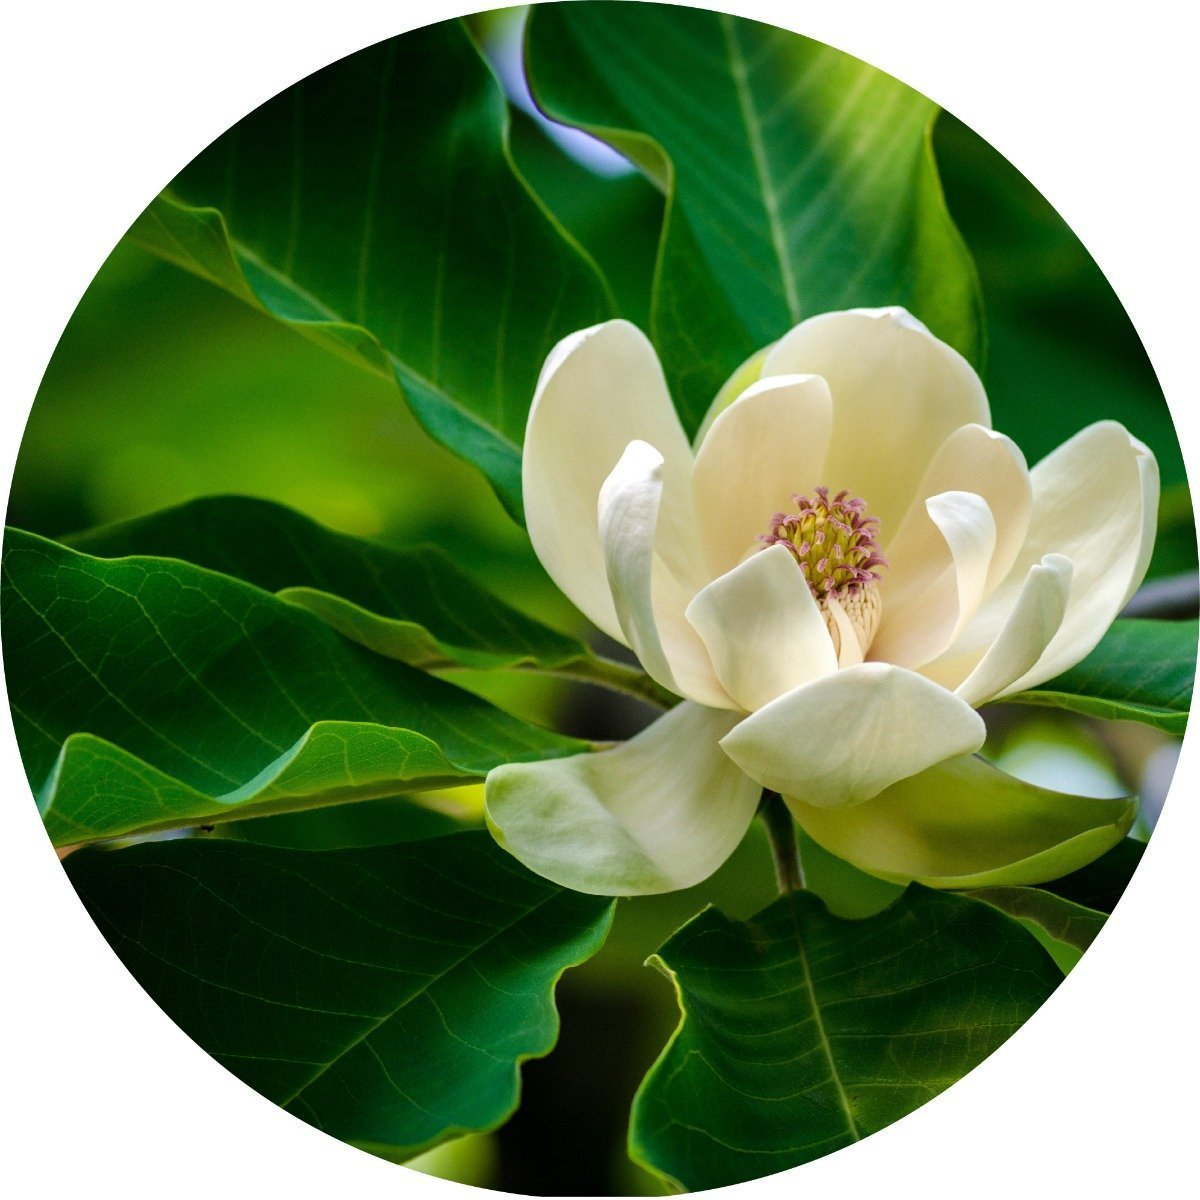 Magnolia Leaf Essential Oil